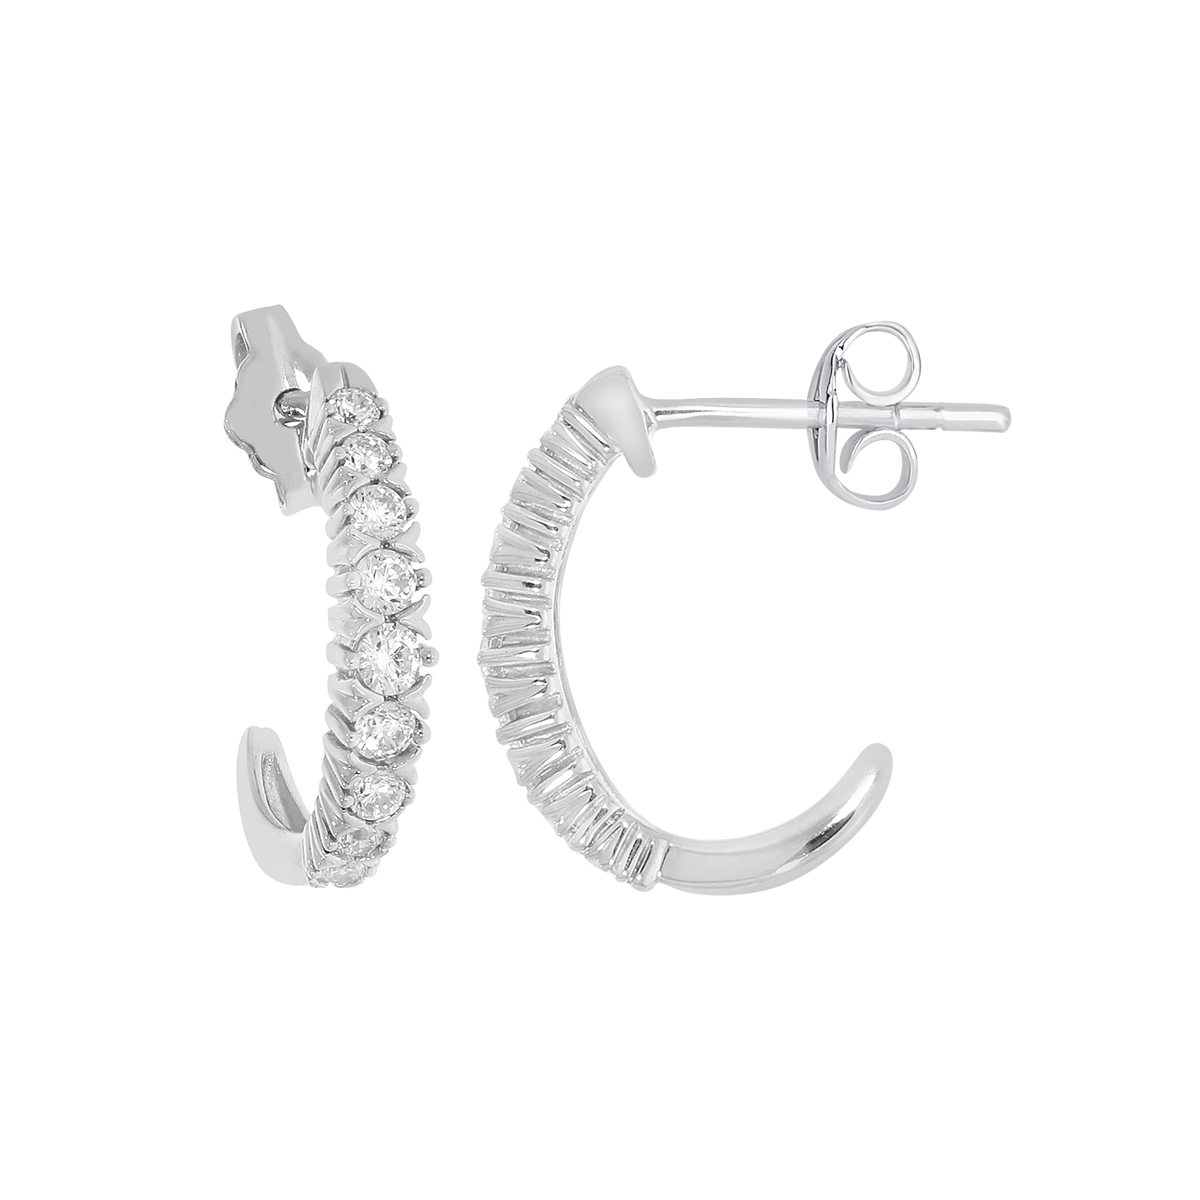 Paramount Gems 14 Karat White Gold J Hoop Diamond Earrings